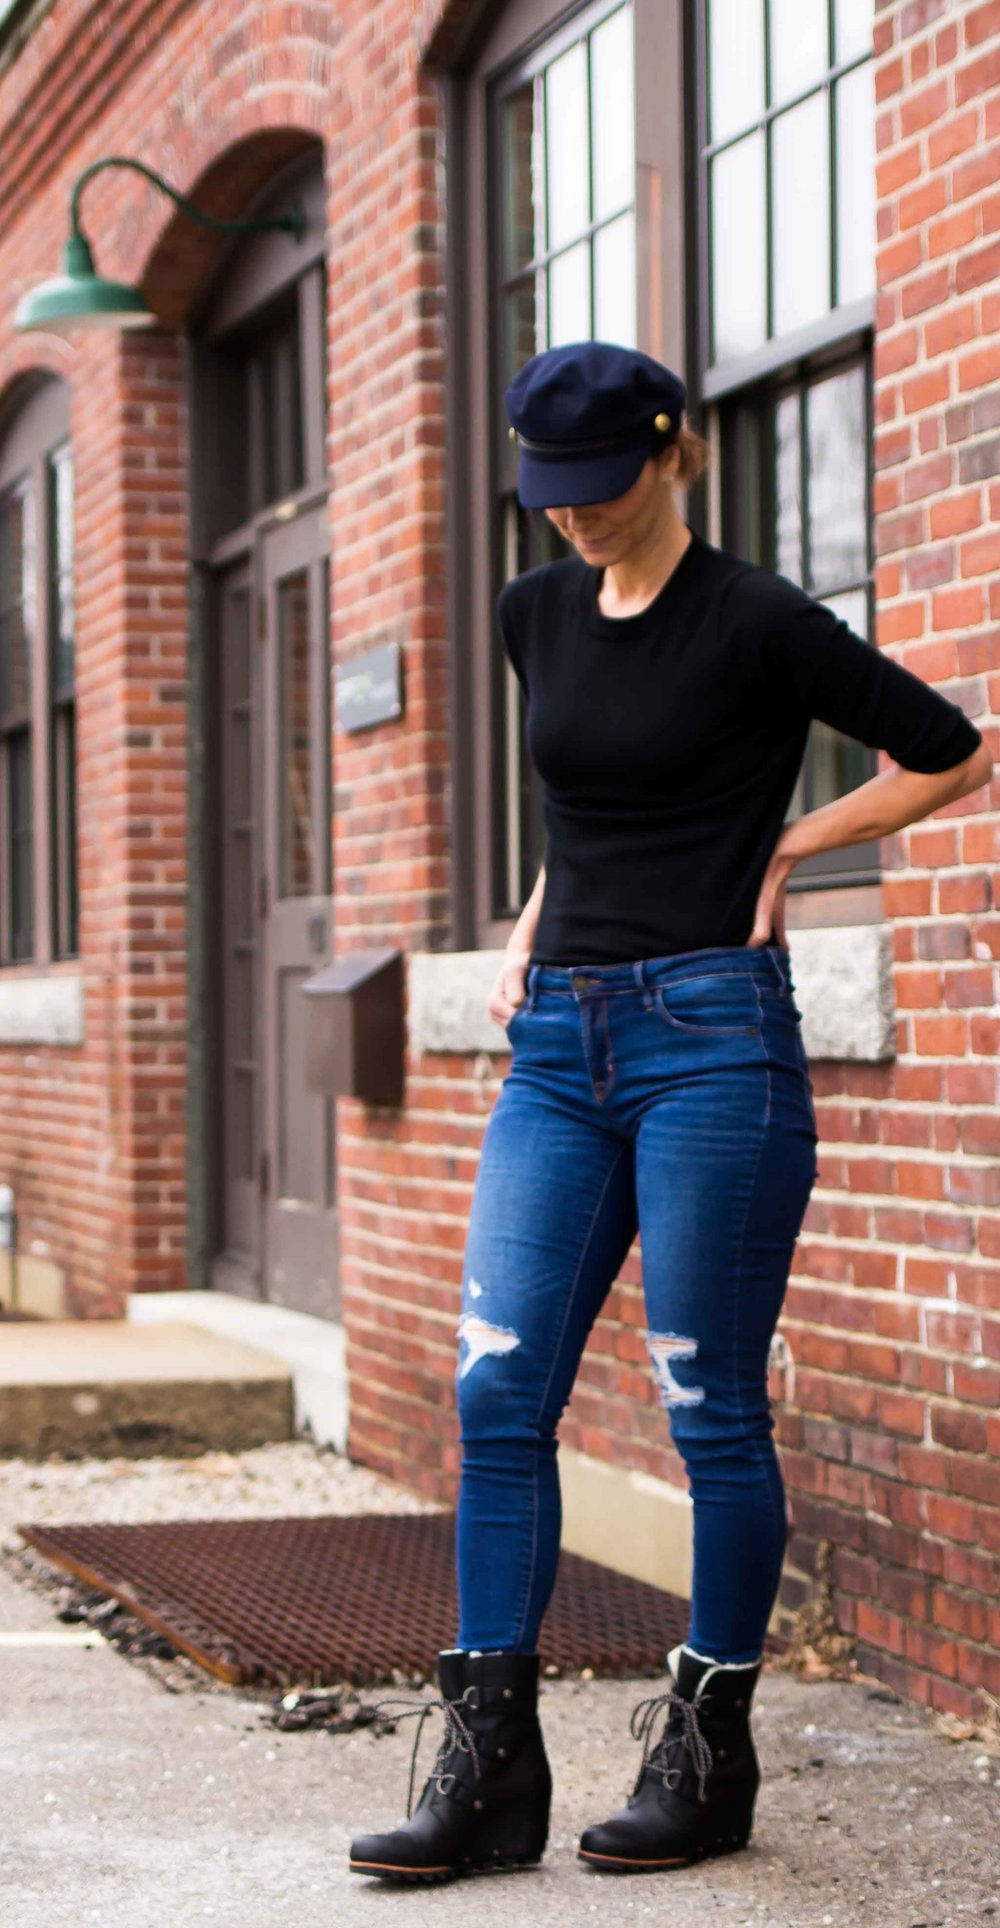 Casual Friday Outfits - Weekend Outfits -Fashion for Women - Sorel Boots - Captain's Cap - Weekend Wear  heartandseam.com  #heartandseam